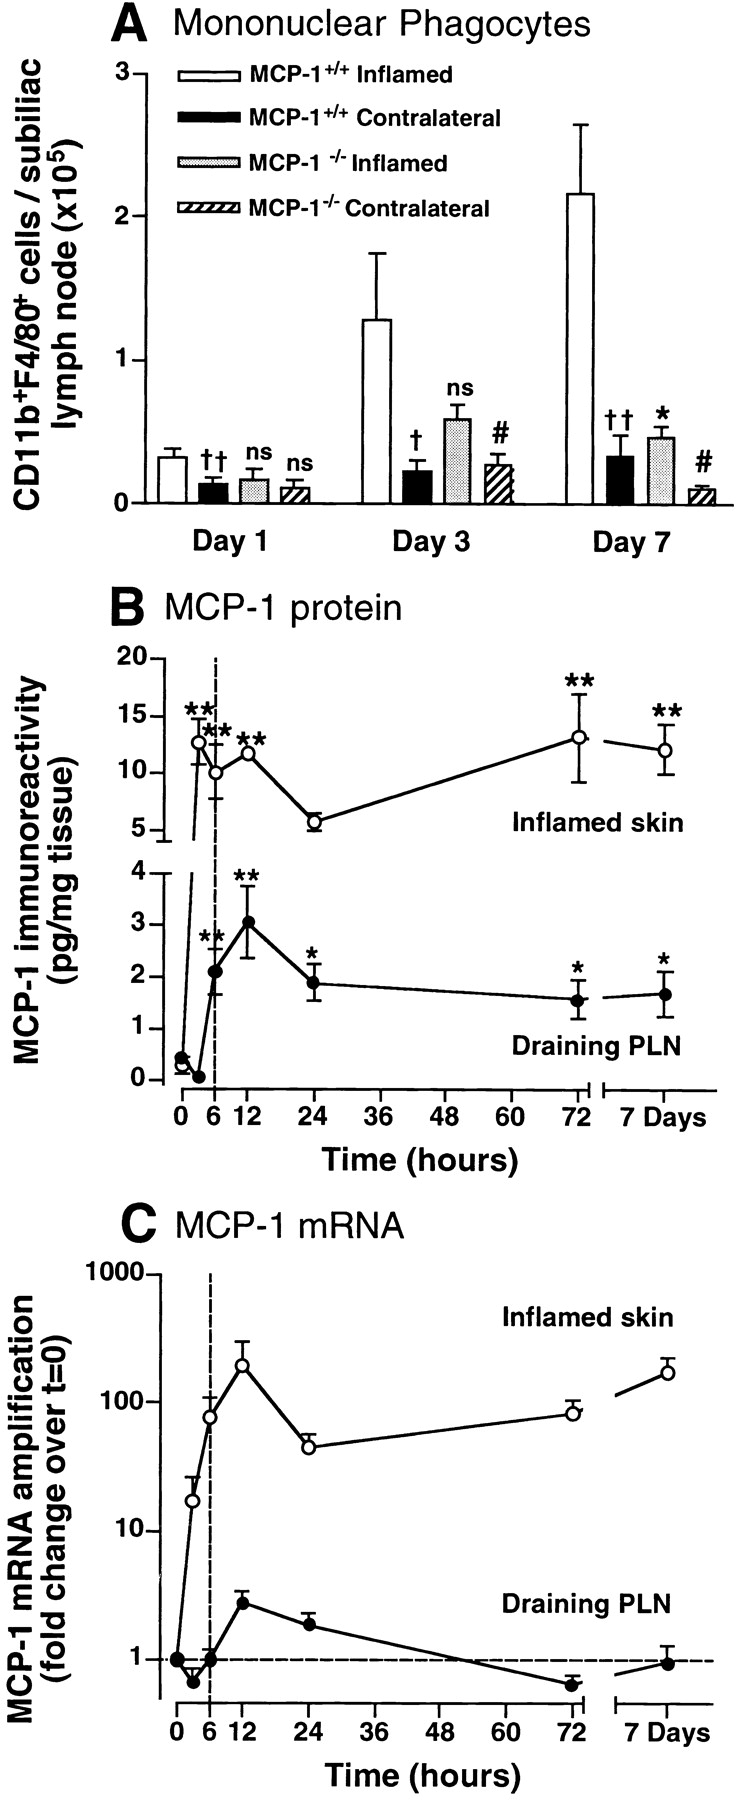 Rapid, sustained induction of MCP-1 in inflamed skin precipitates monocyte/macrophage accumulation in draining PLNs. (A) Time course of monocyte/macrophage recruitment to PLNs of wild-type and MCP-1 −/ − mice. CD11b + F4/80 + leukocytes were counted in subiliac PLNs at different times after intracutaneous injection of CFA/KLH into the ipsilateral flank. Monocyte numbers in the contralateral, noninflamed subiliac PLNs are shown for comparison. † P